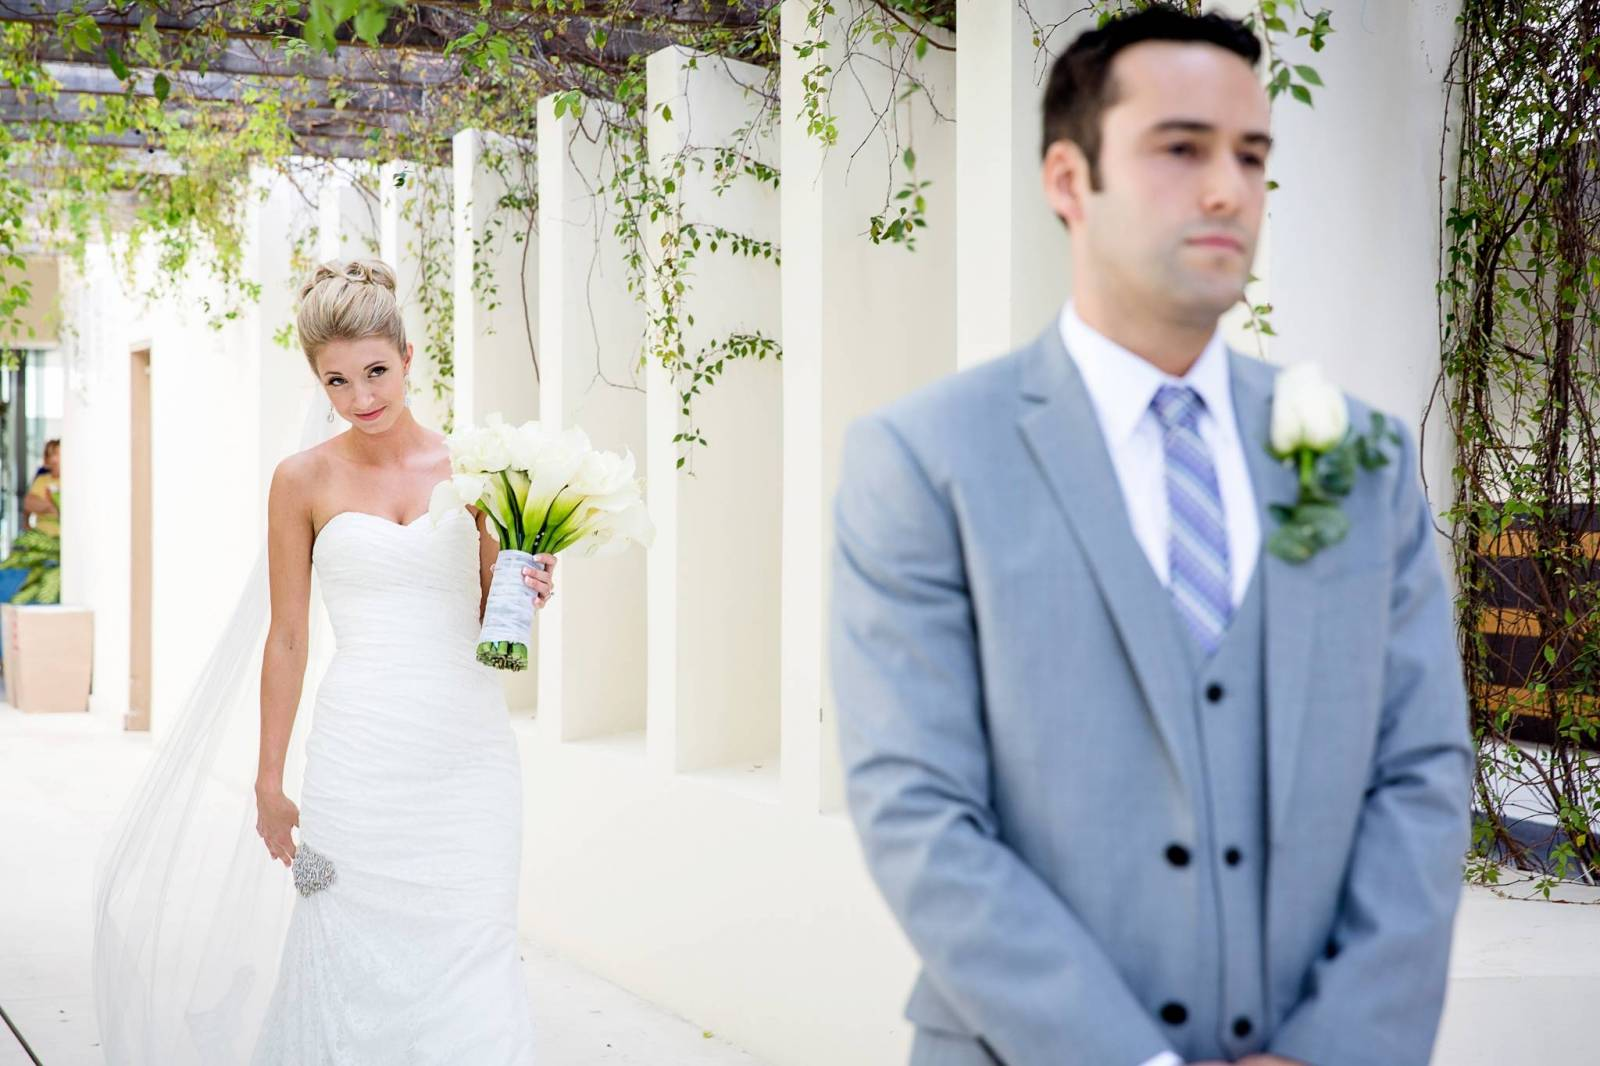 Magnificent Wedding Suit Bride Gallery - All Wedding Dresses ...